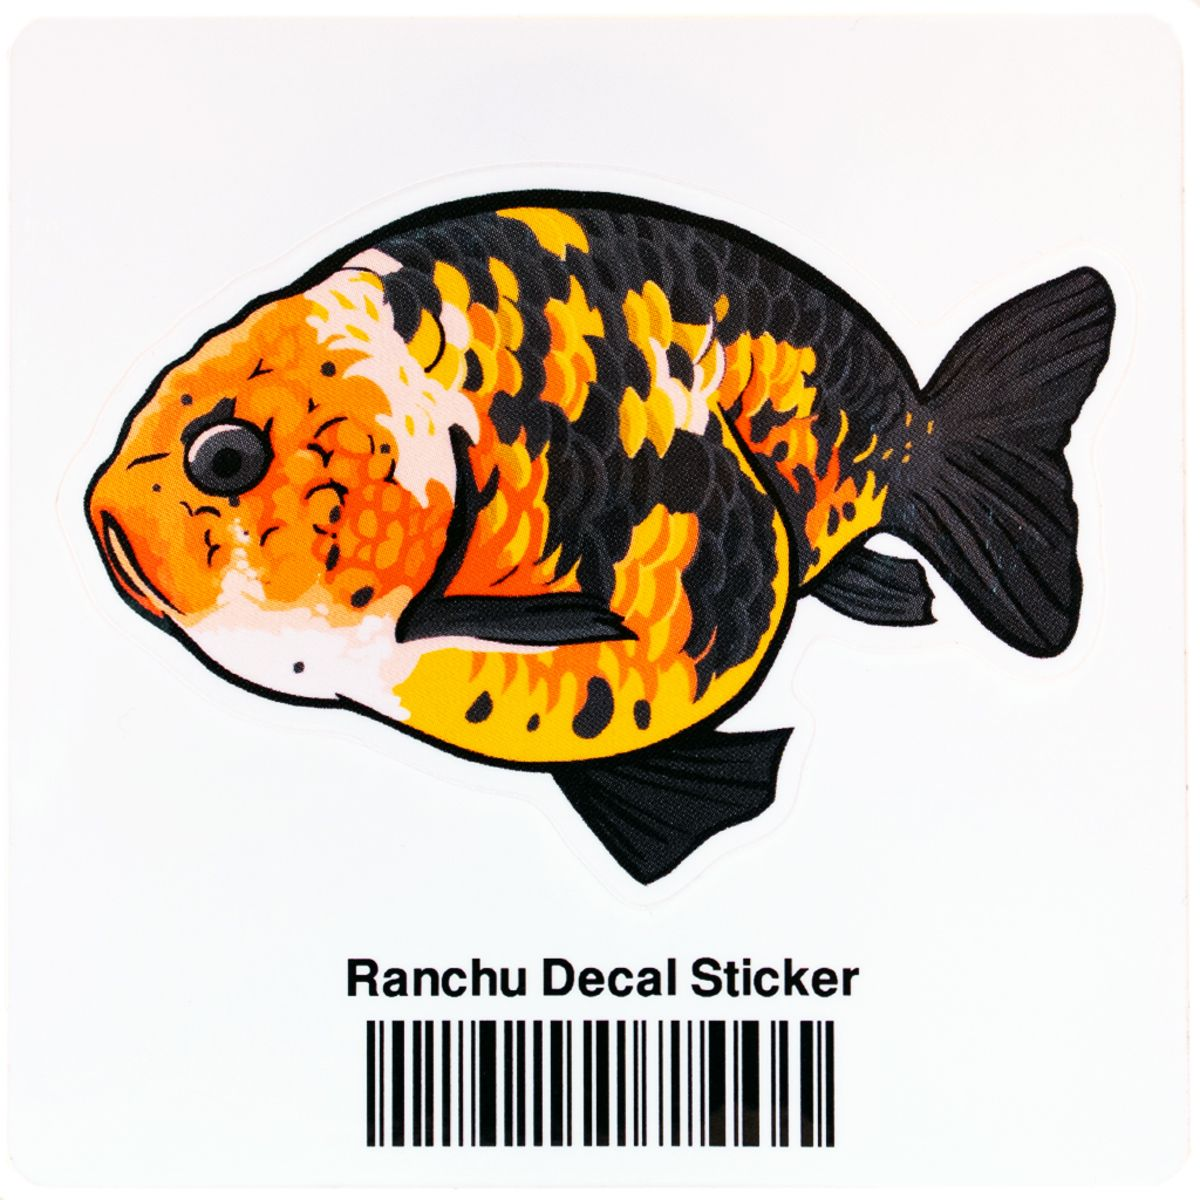 Ranchu Decal Sticker